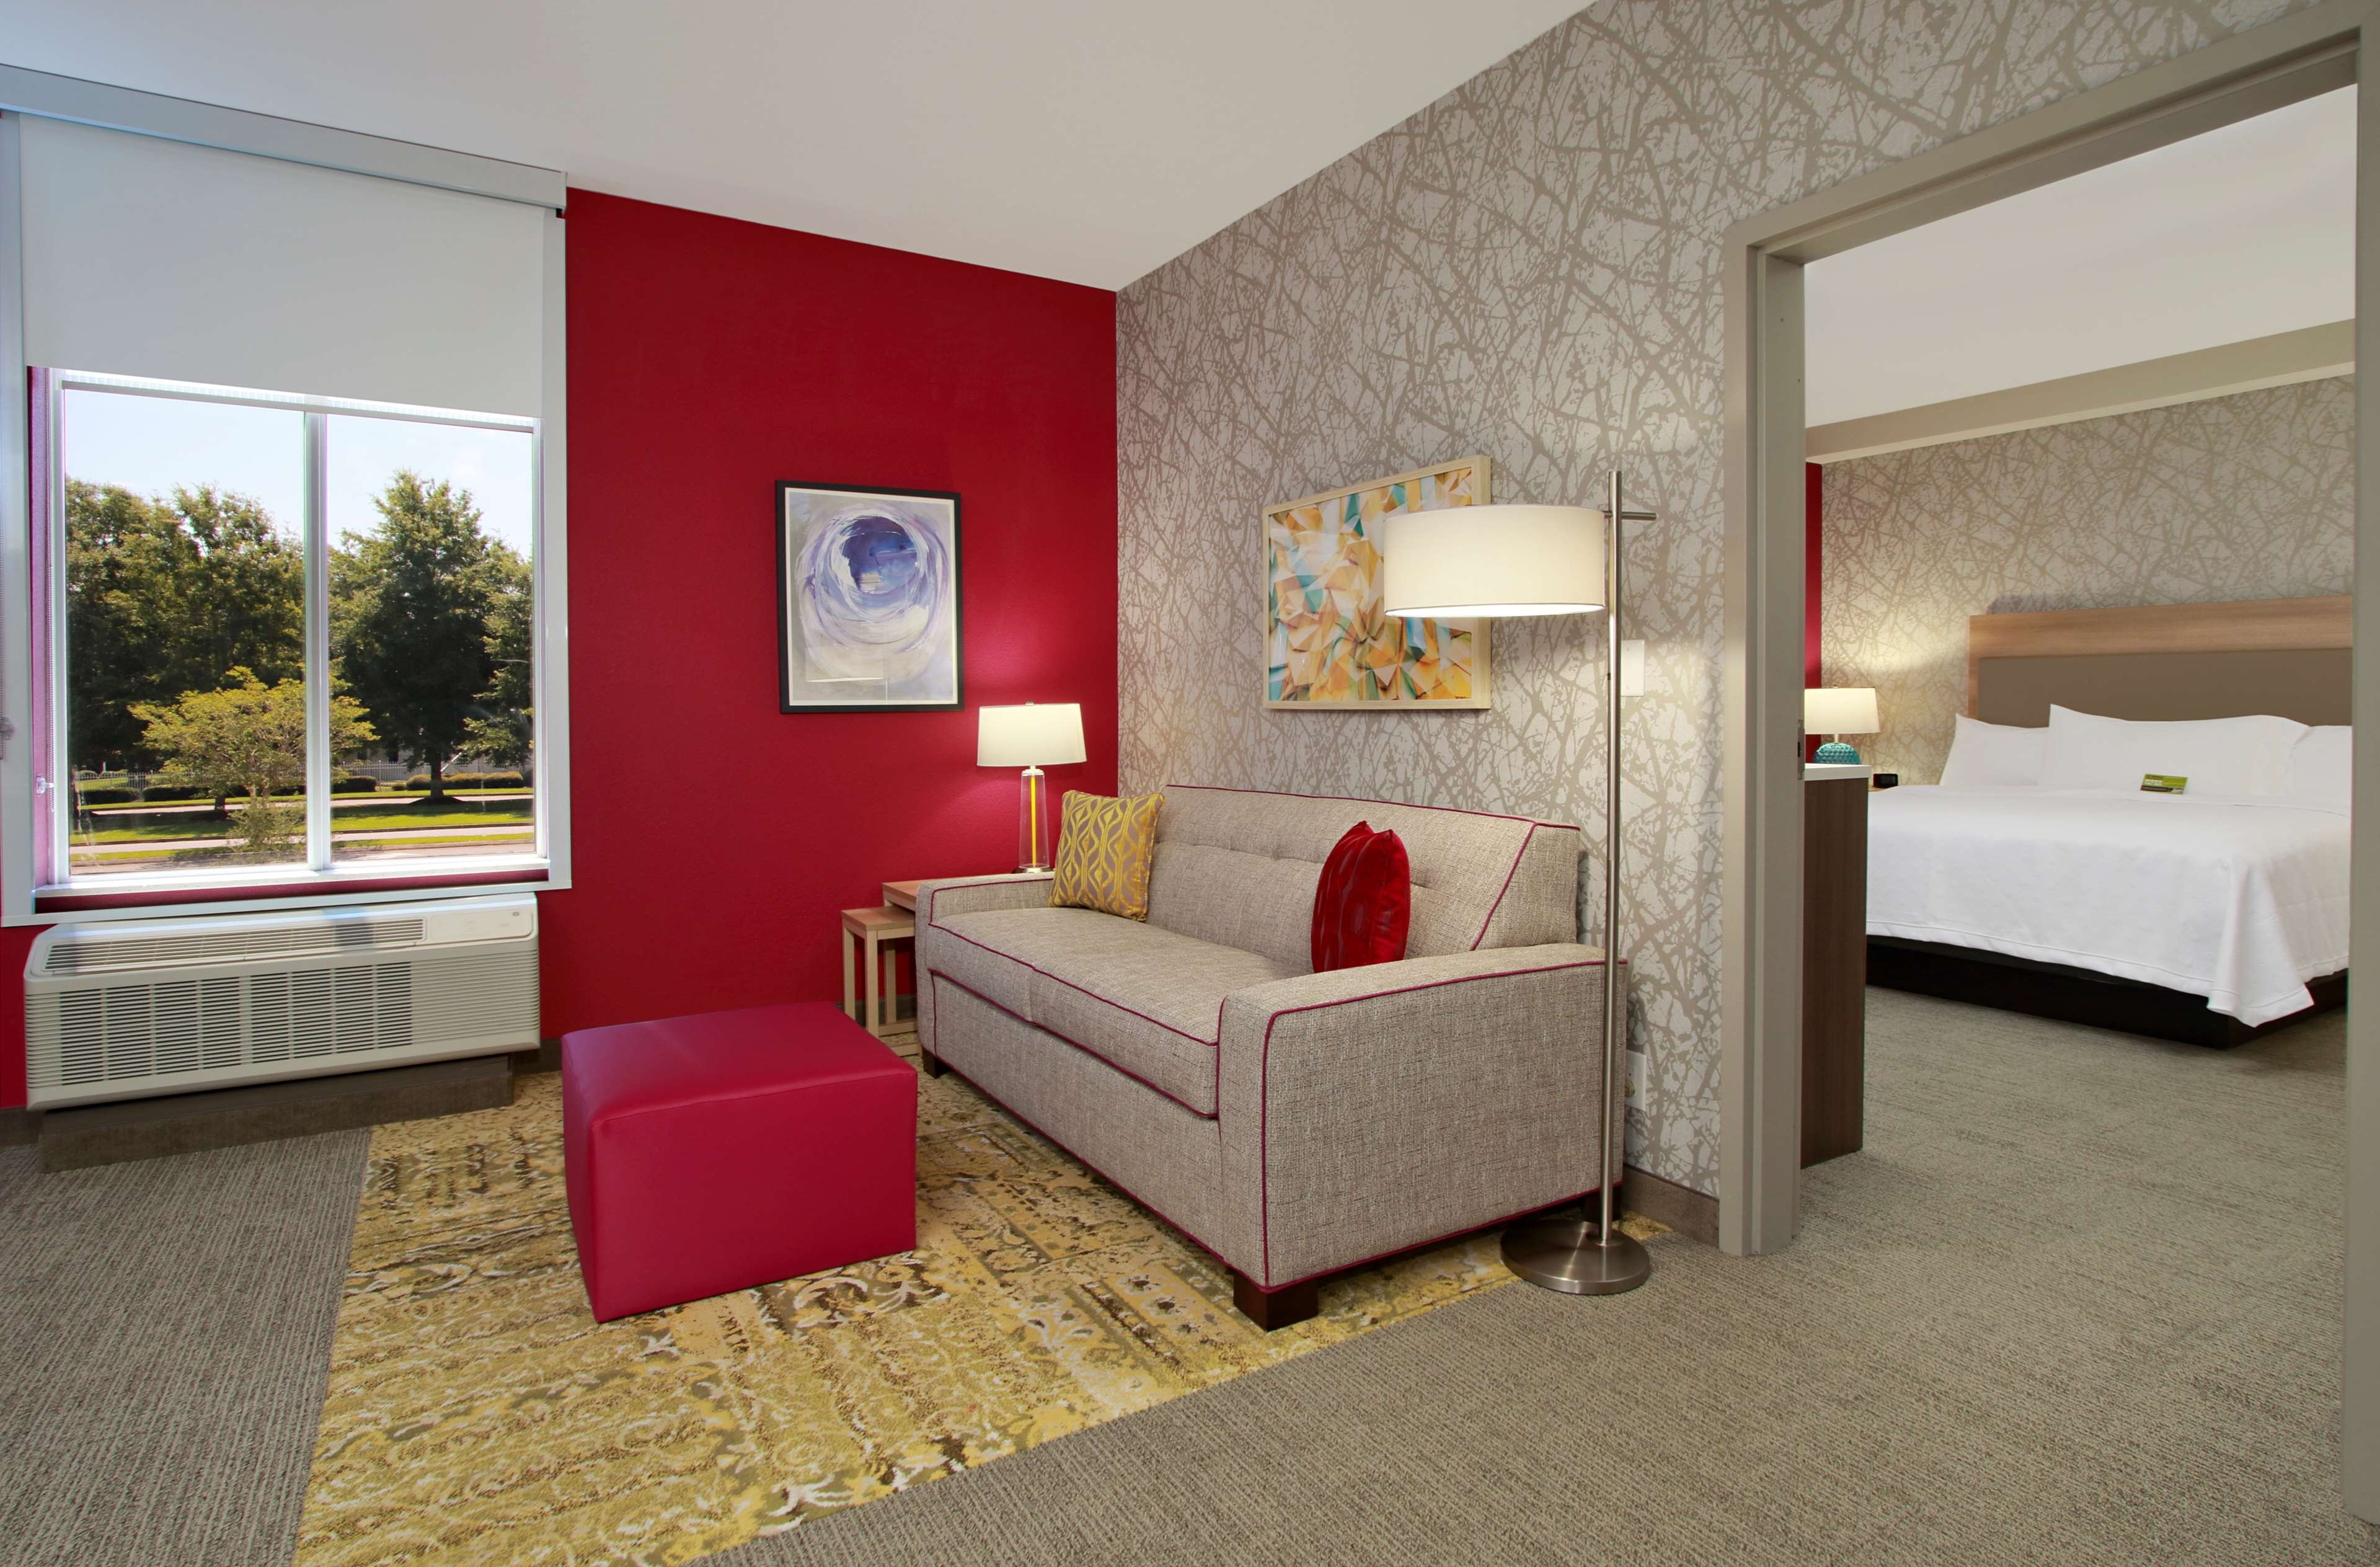 Home2 Suites by Hilton Mobile I-65 Government Boulevard image 19